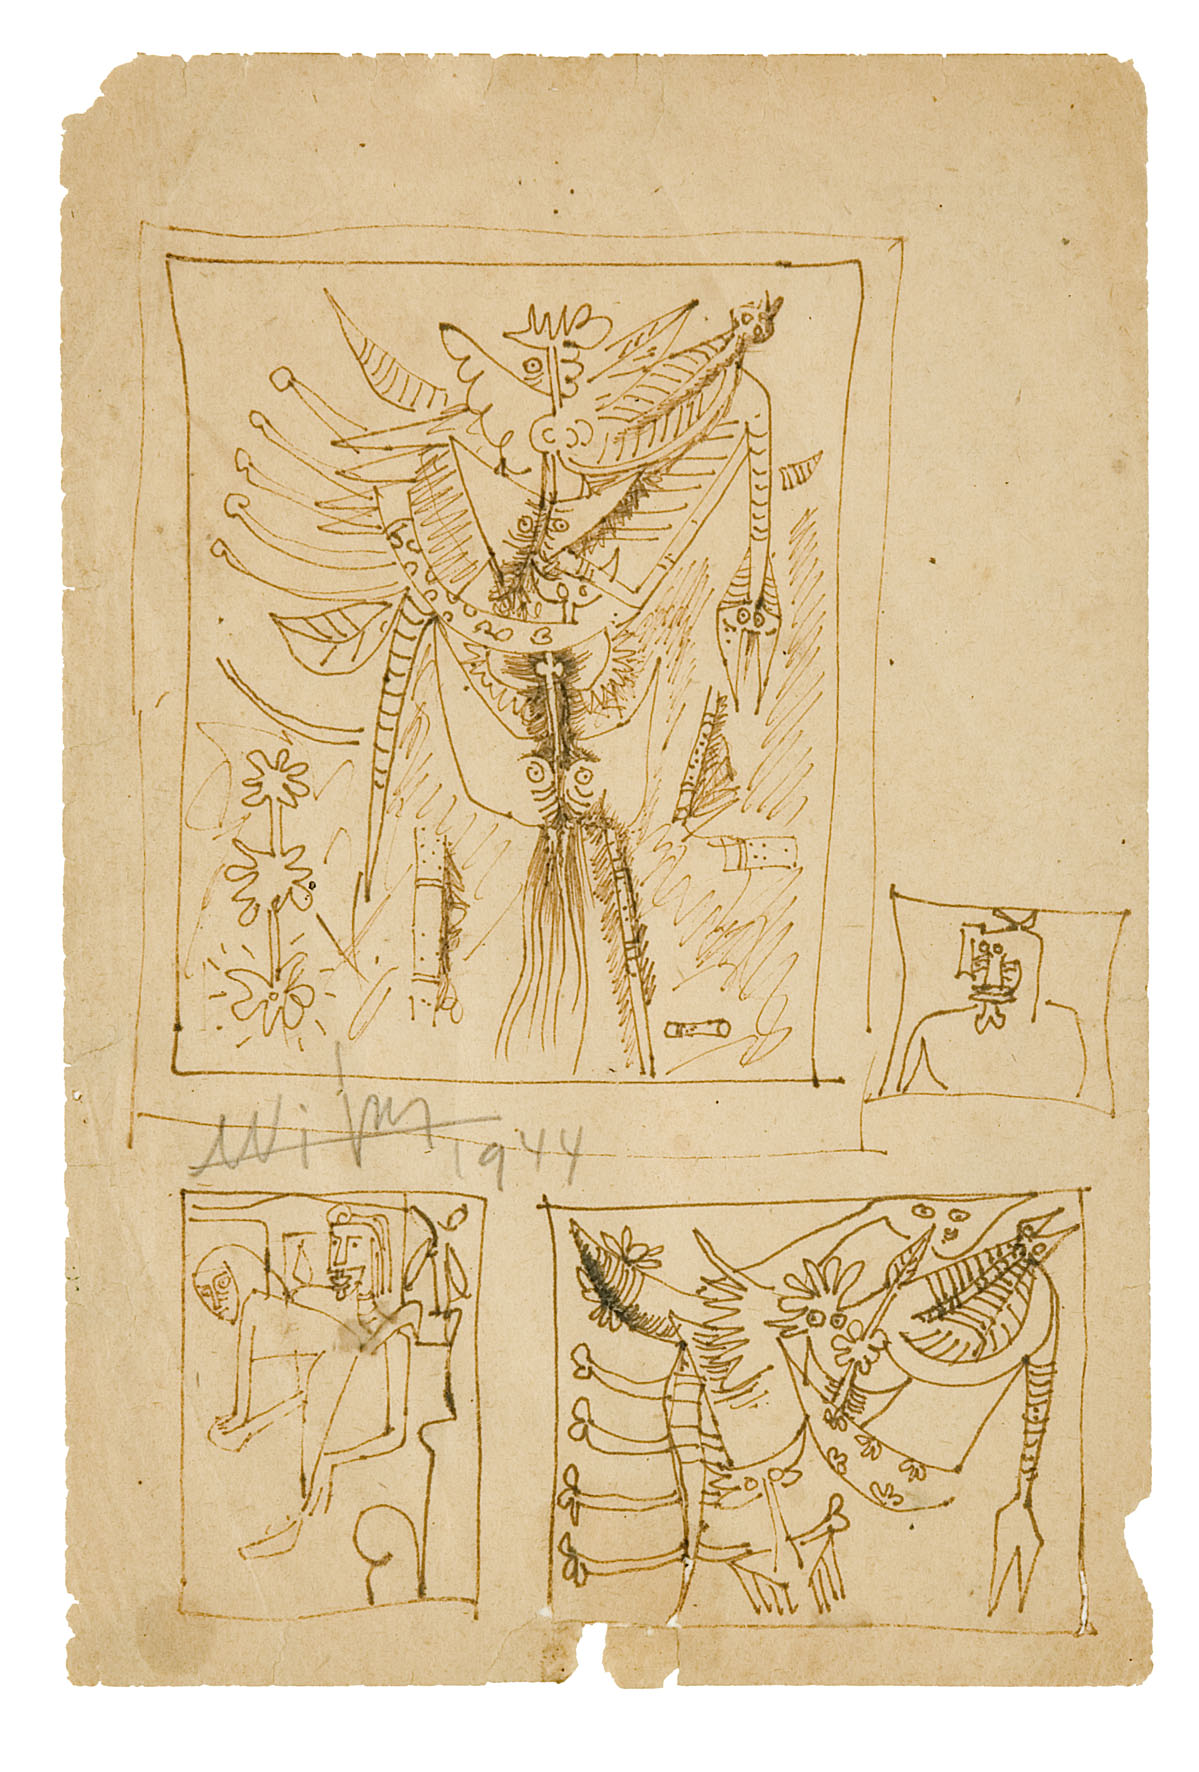 1)1944, ST, encre chine,1944